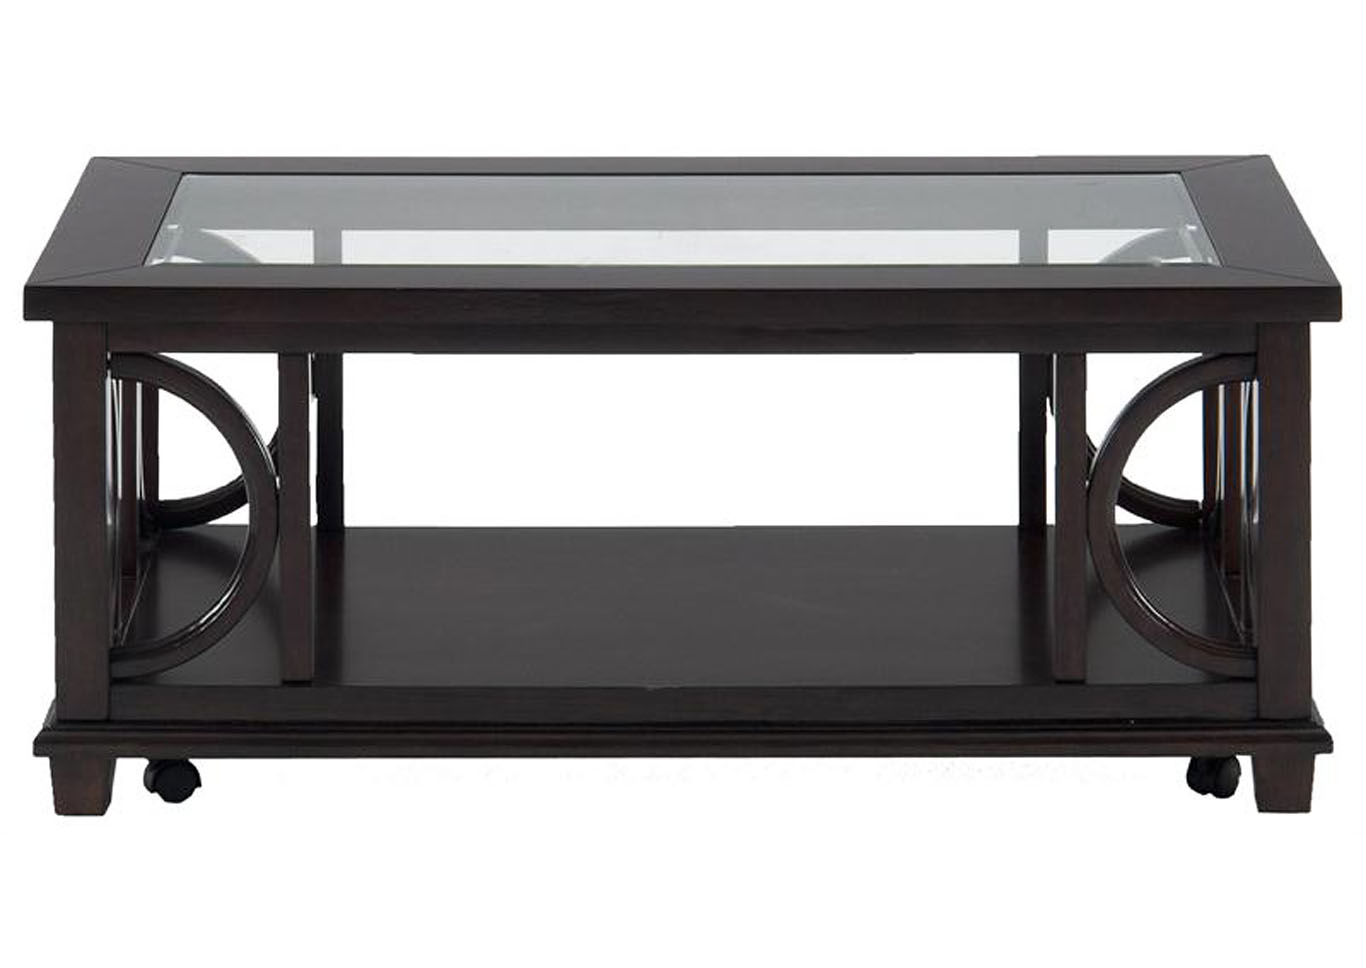 Belize Contemporary Coffee Table,Instore